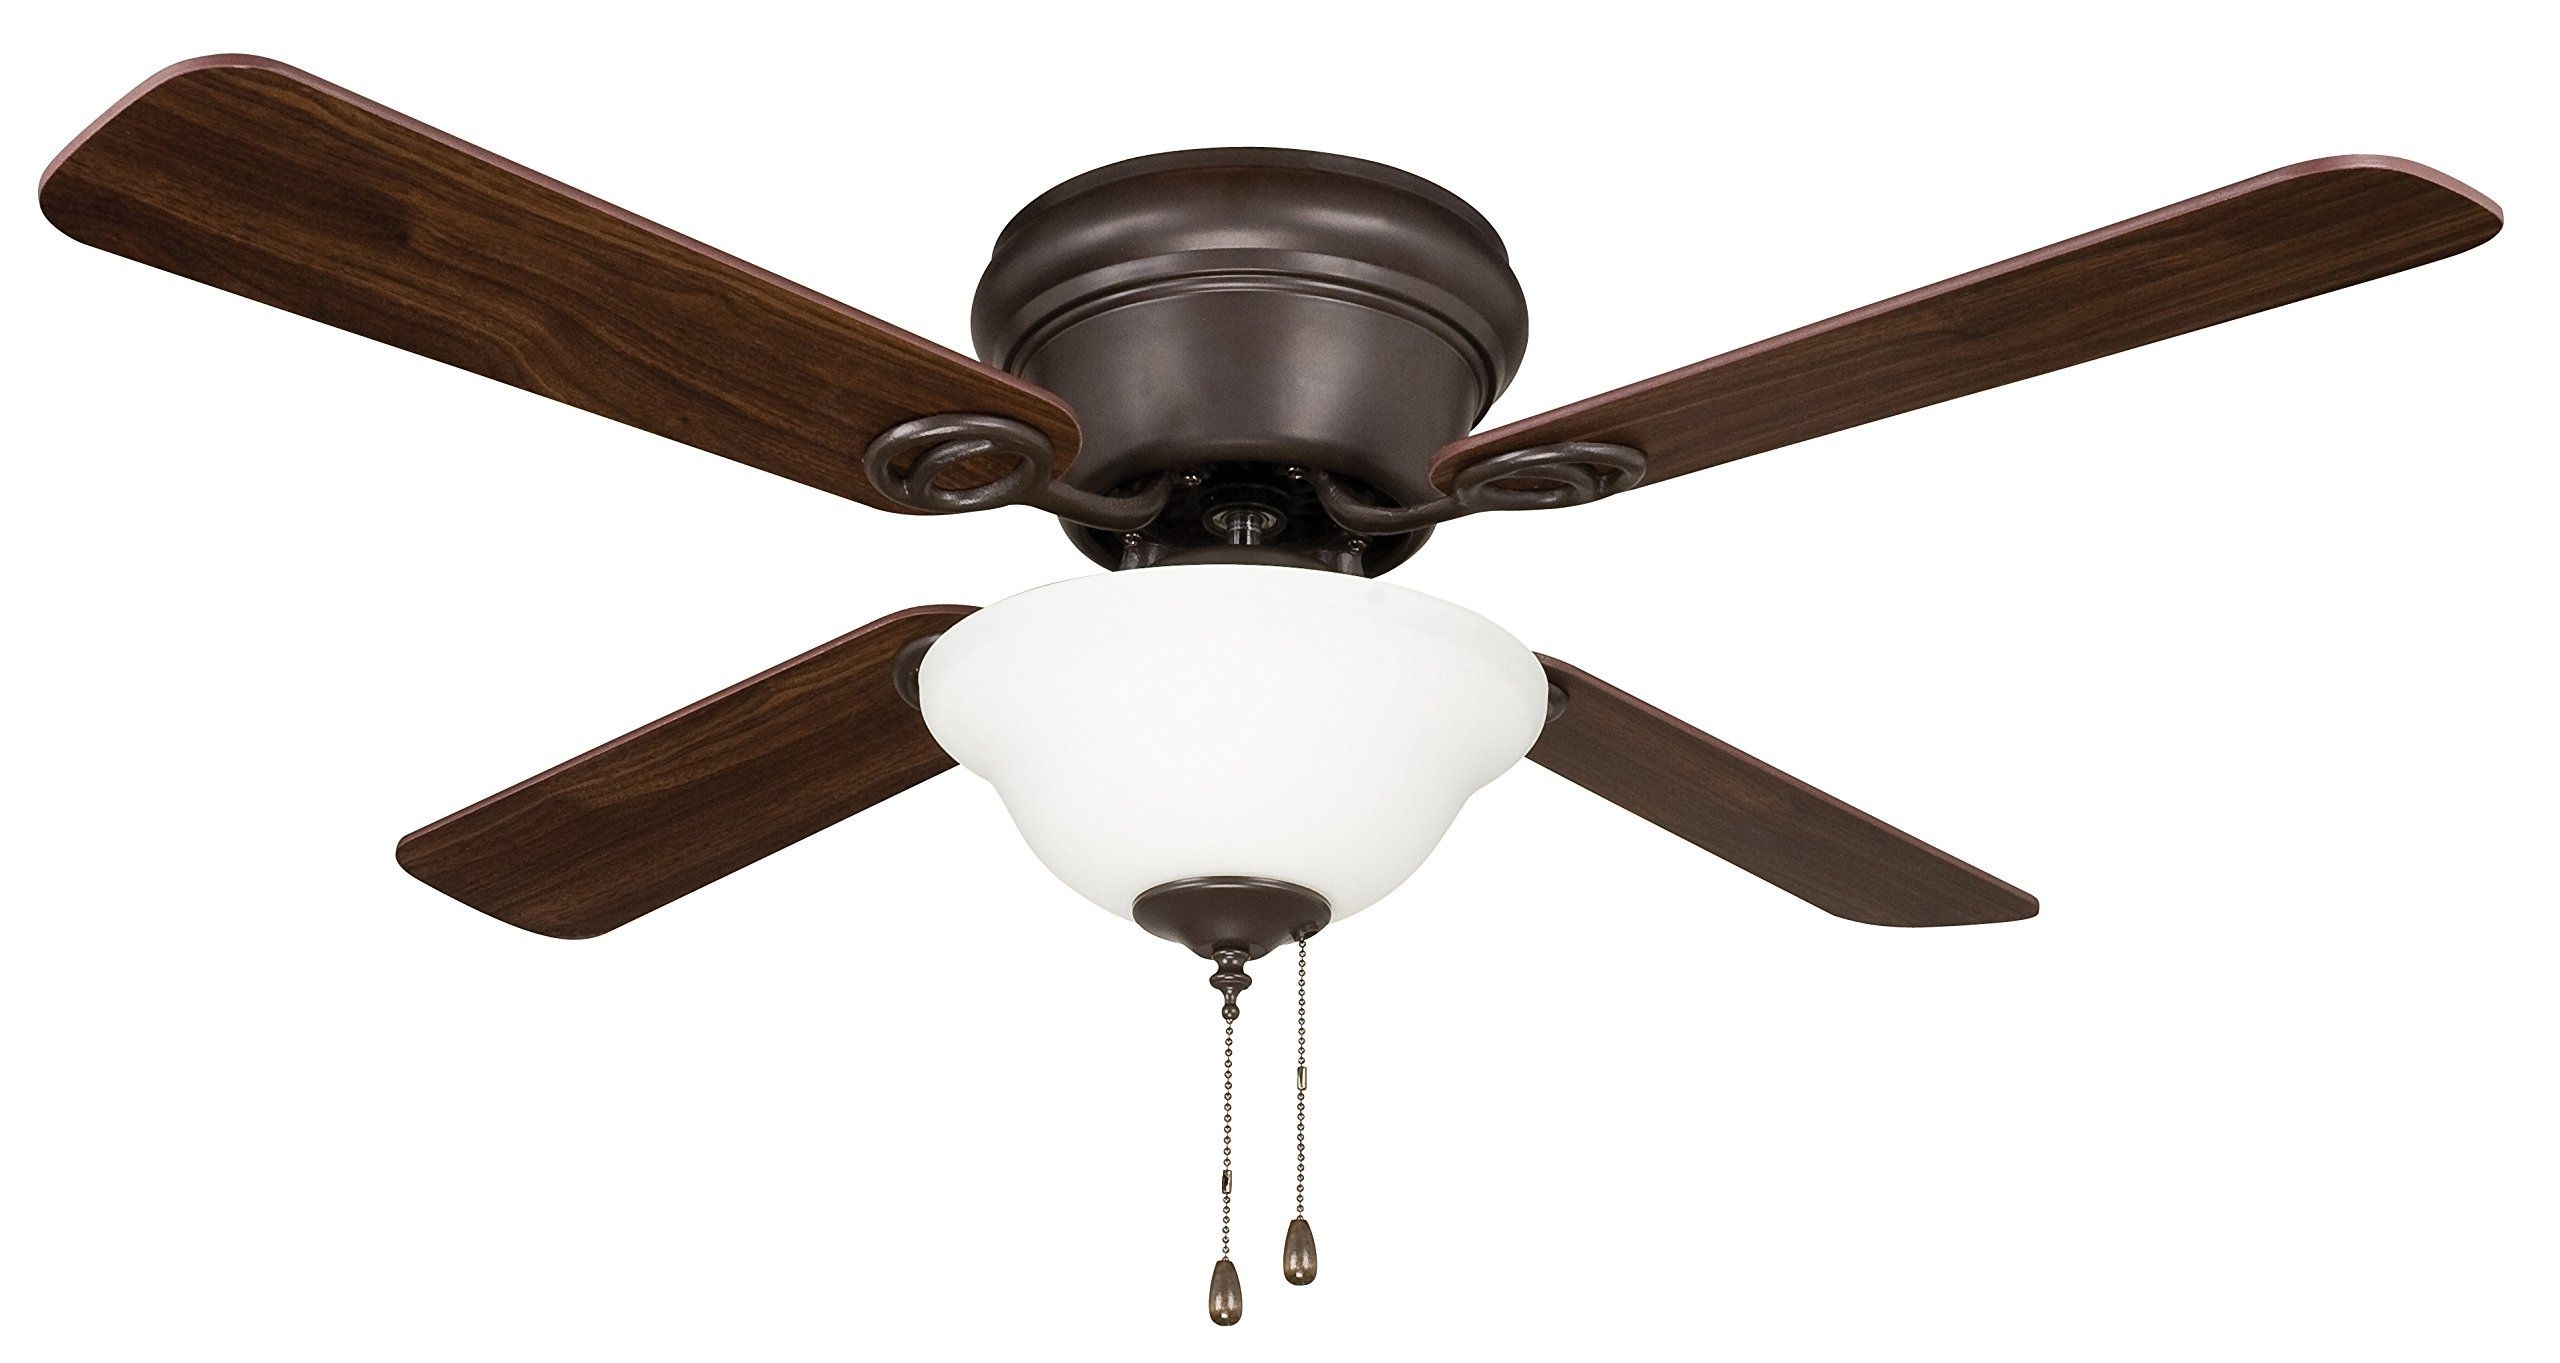 Litex Wc42Orb4C1 Wyman Collection 42 Inch Ceiling Fan With Five Regarding Most Recently Released 42 Inch Outdoor Ceiling Fans With Lights (View 13 of 20)